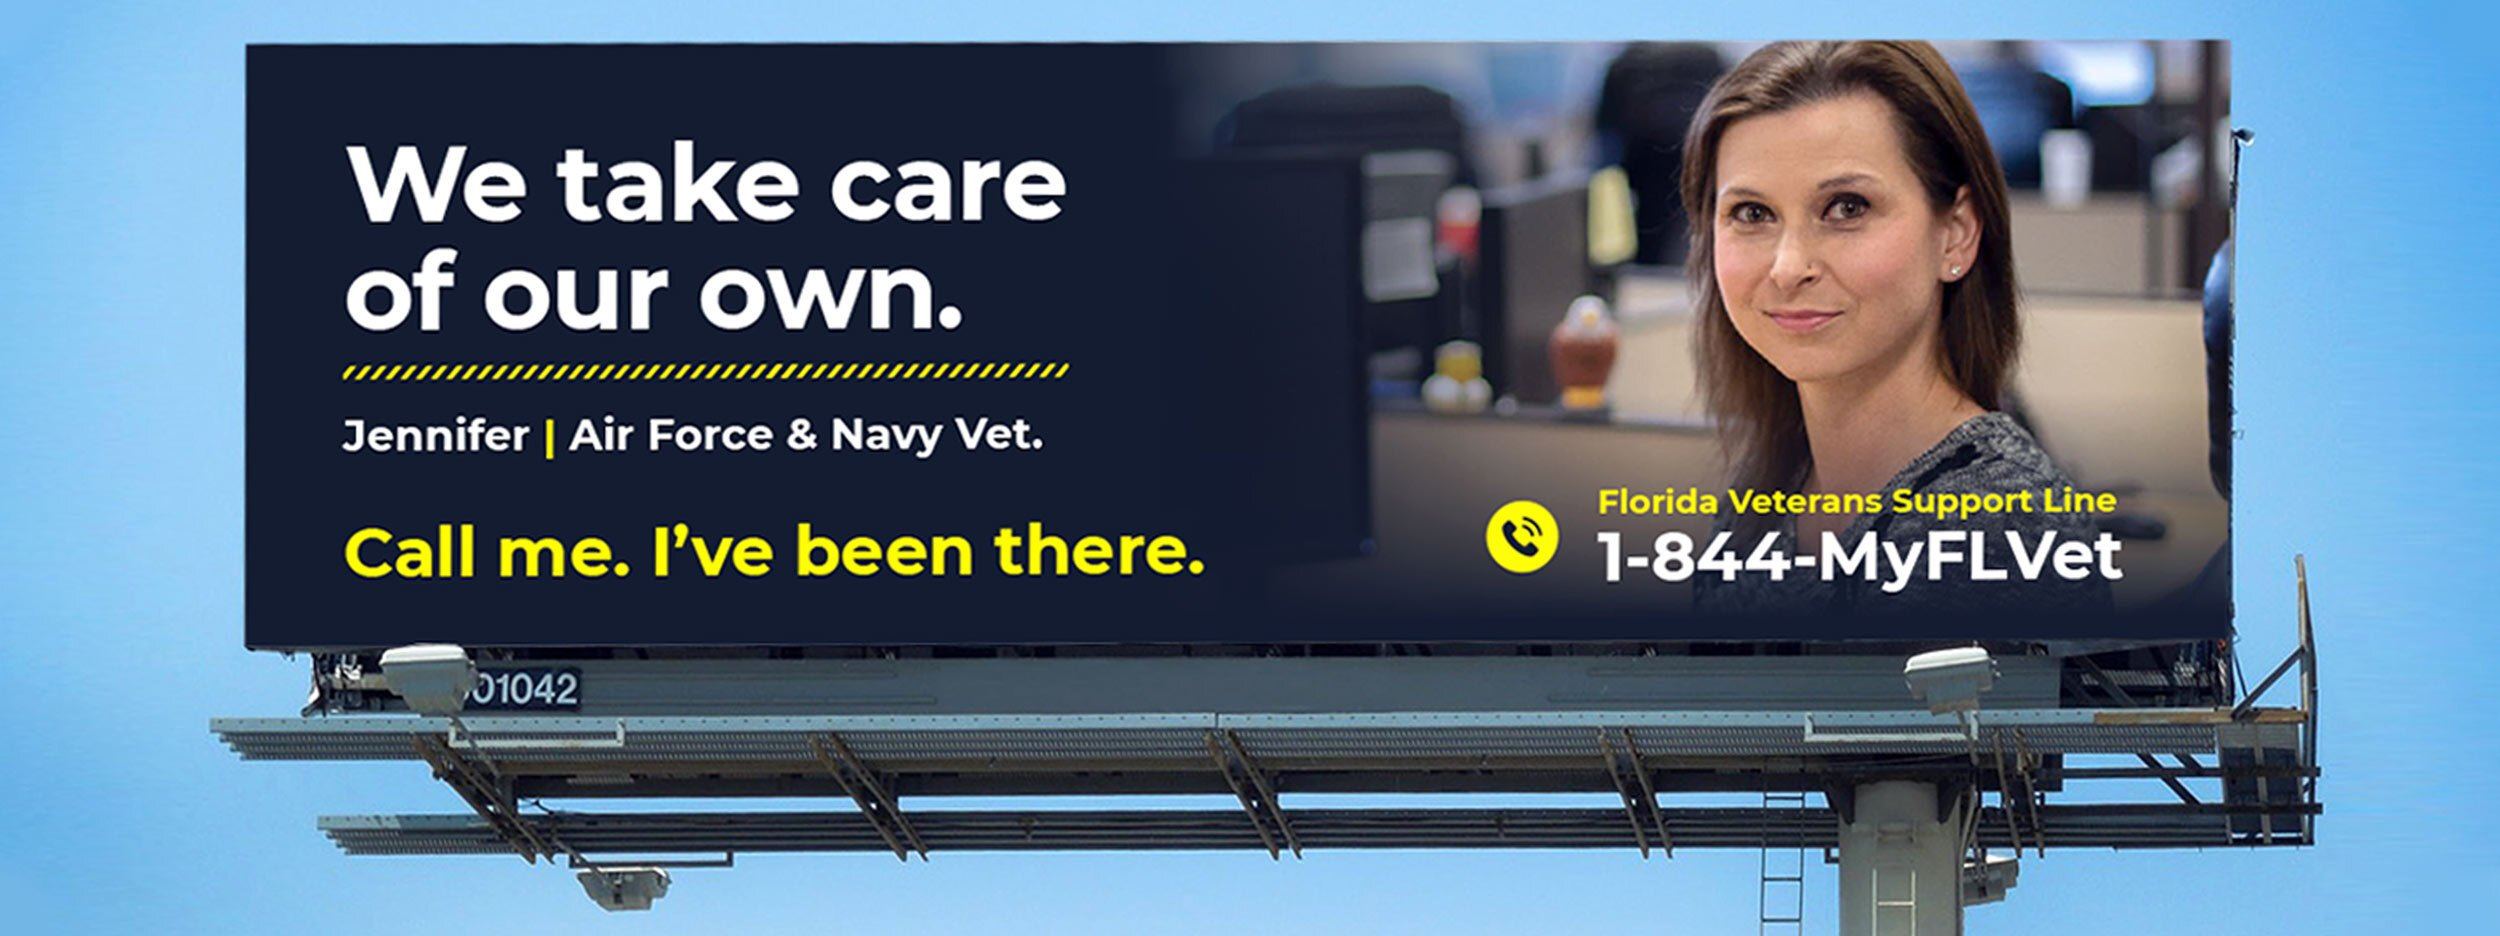 Florida Veterans Support Line Billboard